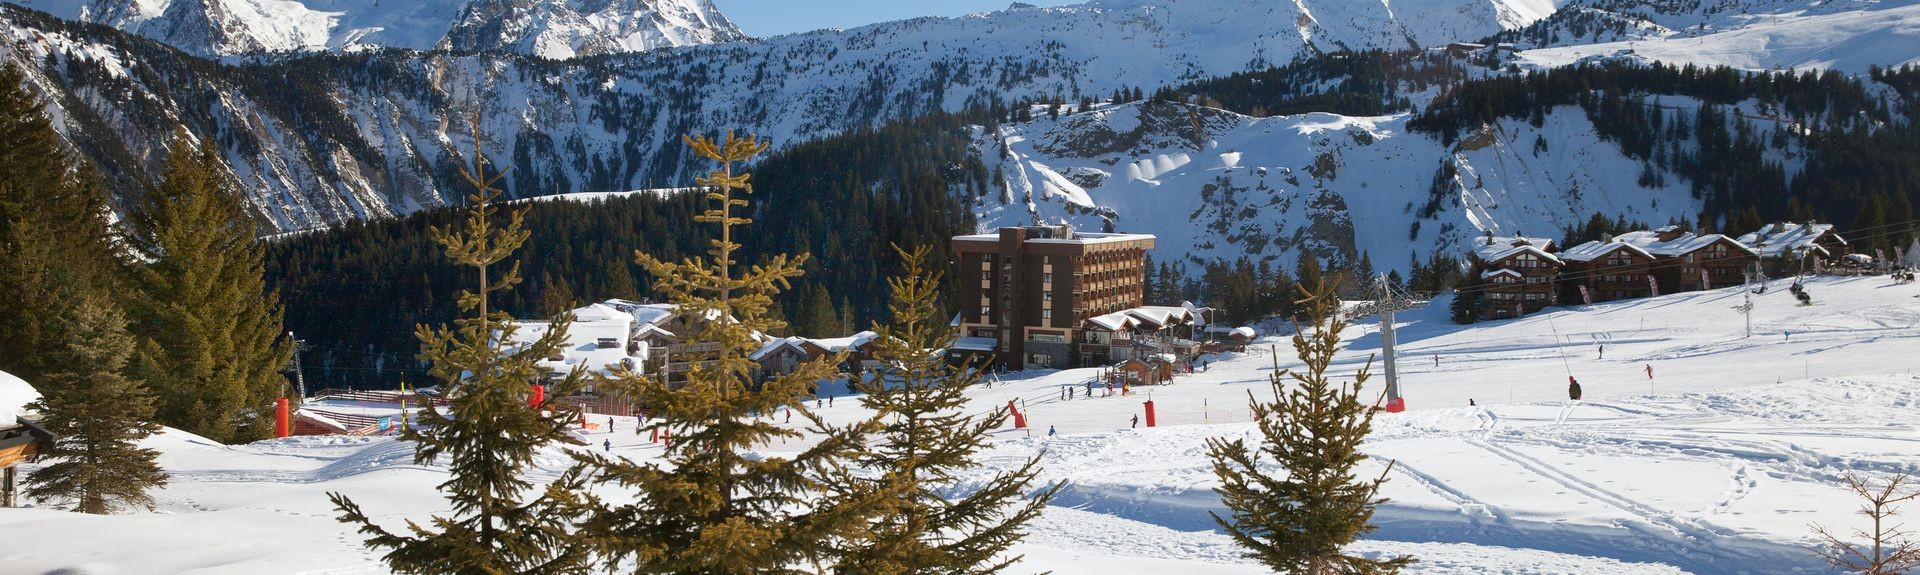 Courchevel 1850, Saint-Bon-Tarentaise, France